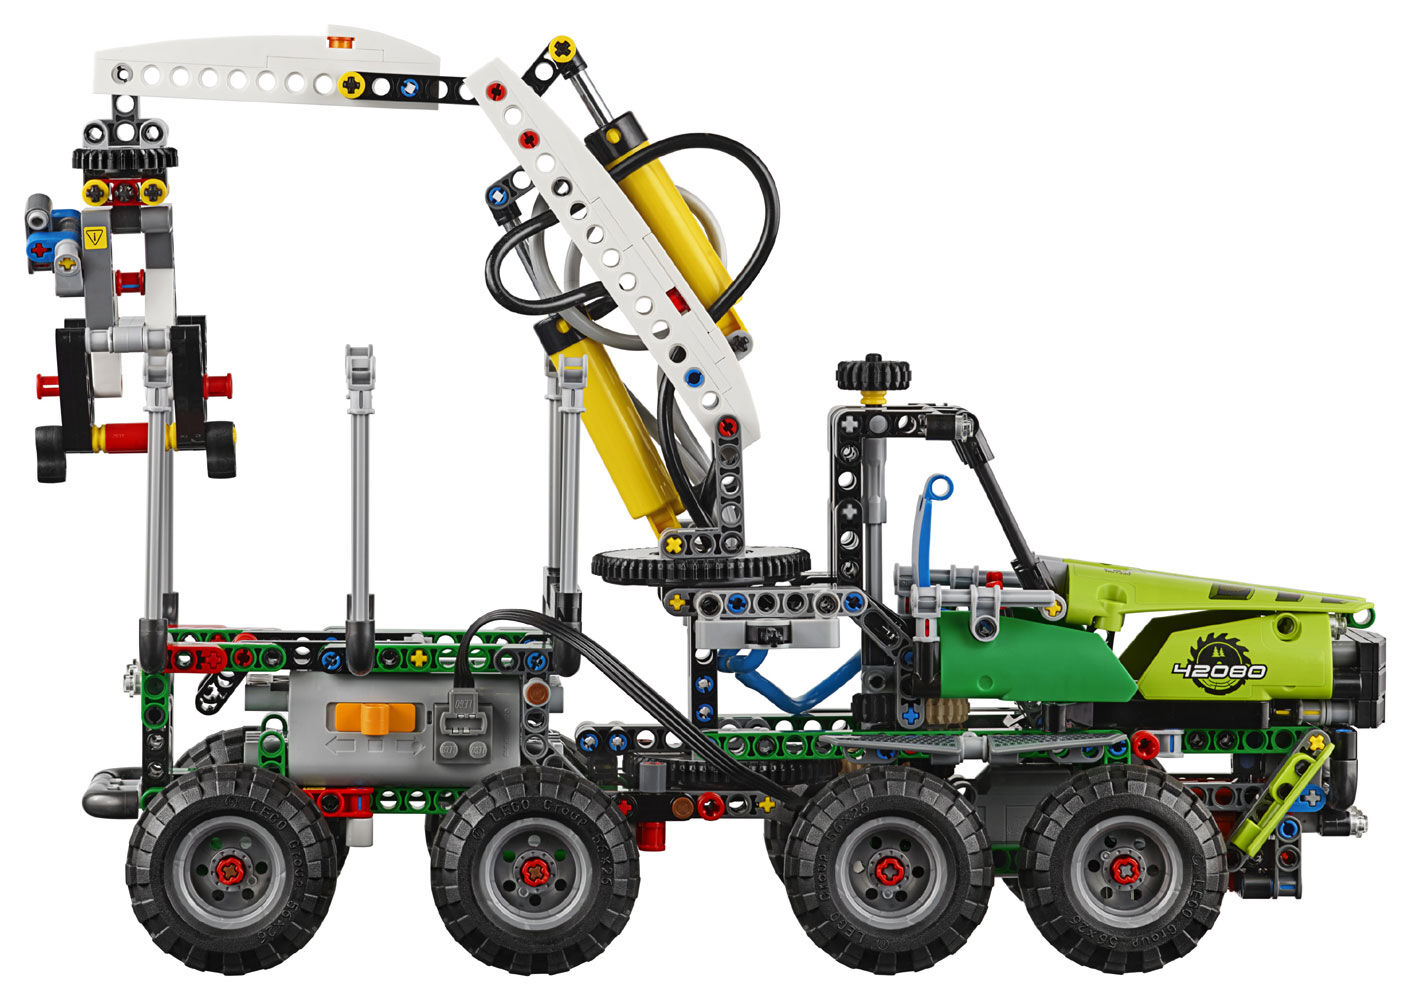 10-16 Years LEGO Technic Forest Machine Power Functions Model 42080